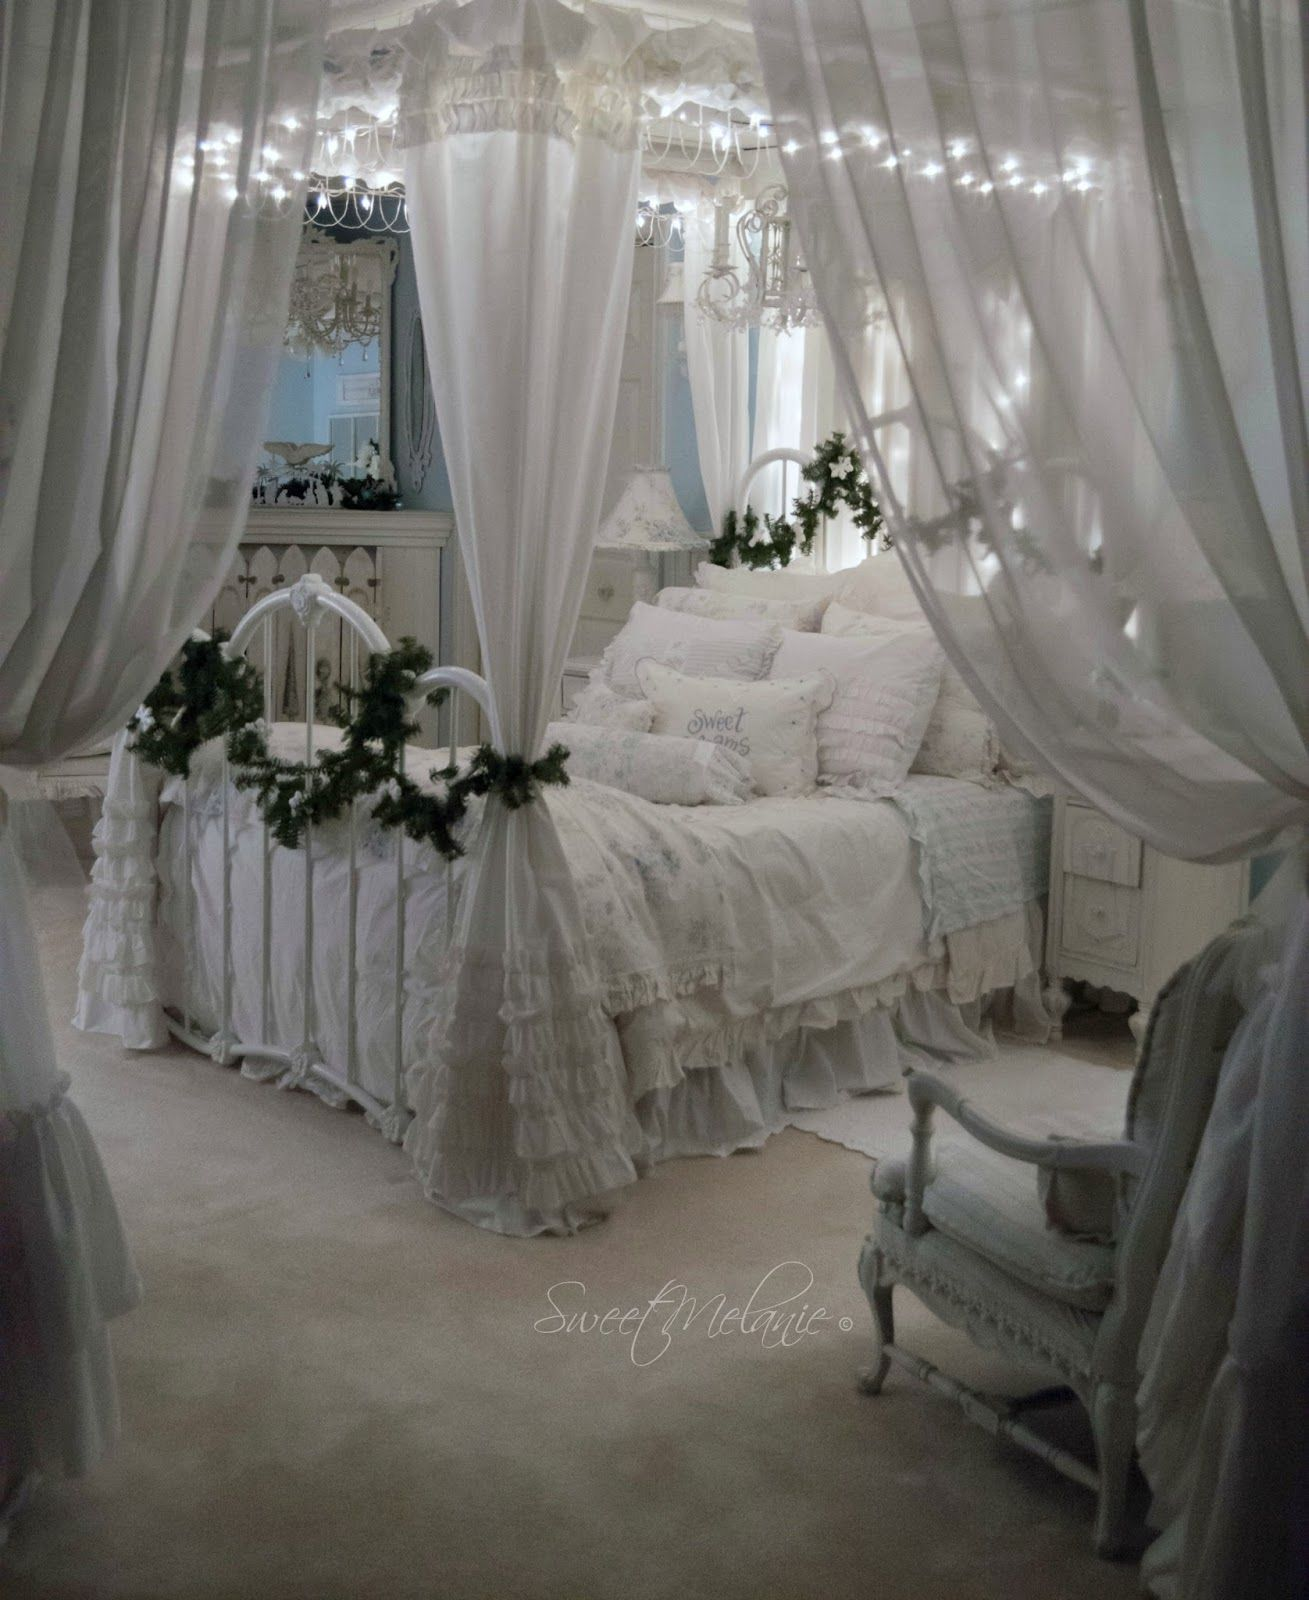 Bedroom Decorating Ideas Romantic Vintage Black And White Bedroom Ideas Black Light Bedroom Decor Bedroom Furniture Color Combination: As Many Of You Know, Our Master Is Downstairs. It's A